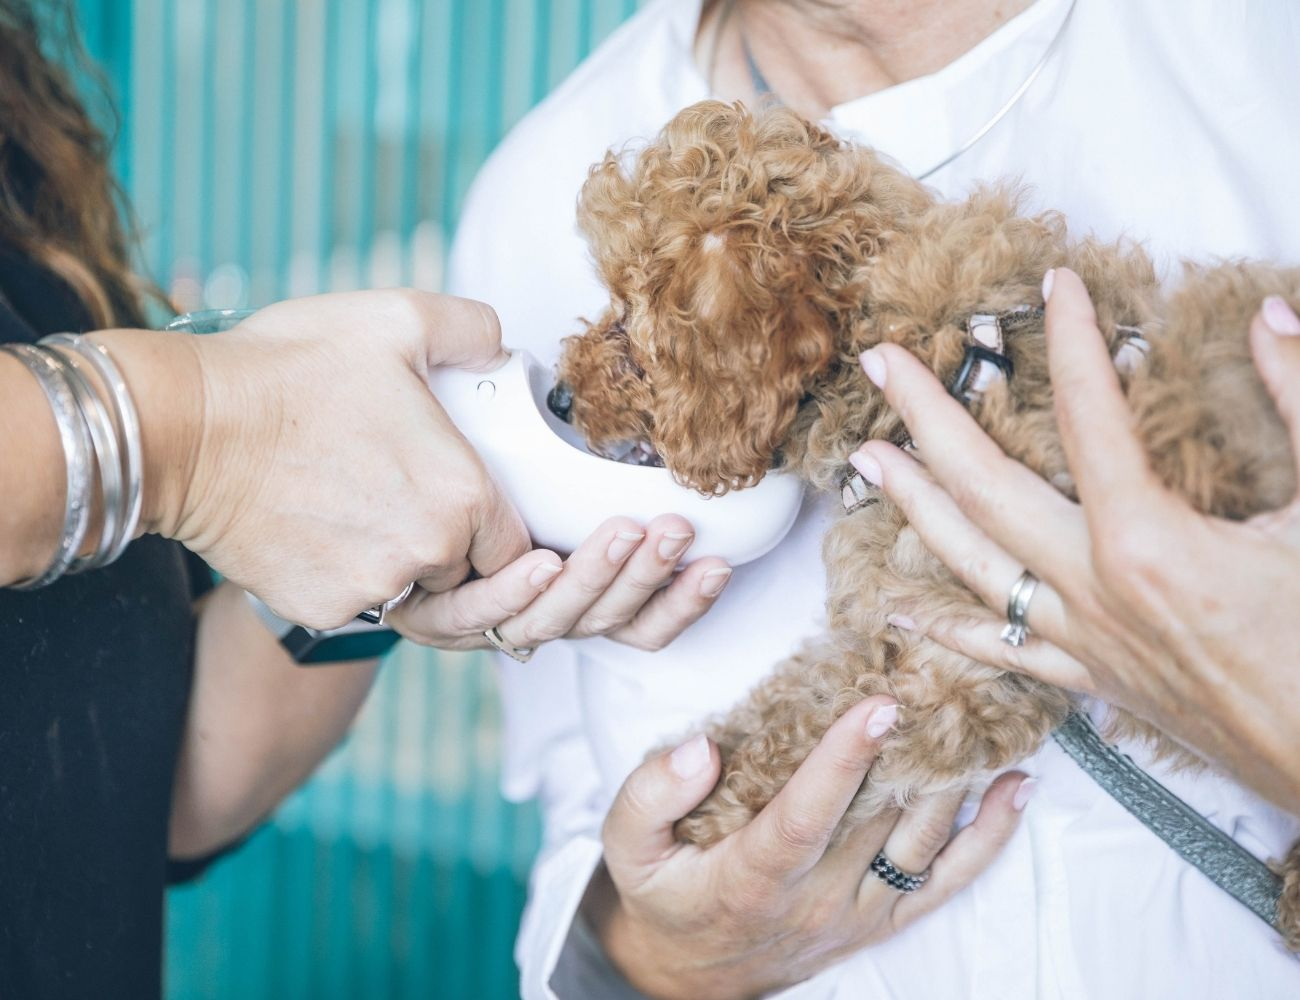 How Reviews Are Helping VidiVet Transform The Veterinary Industry